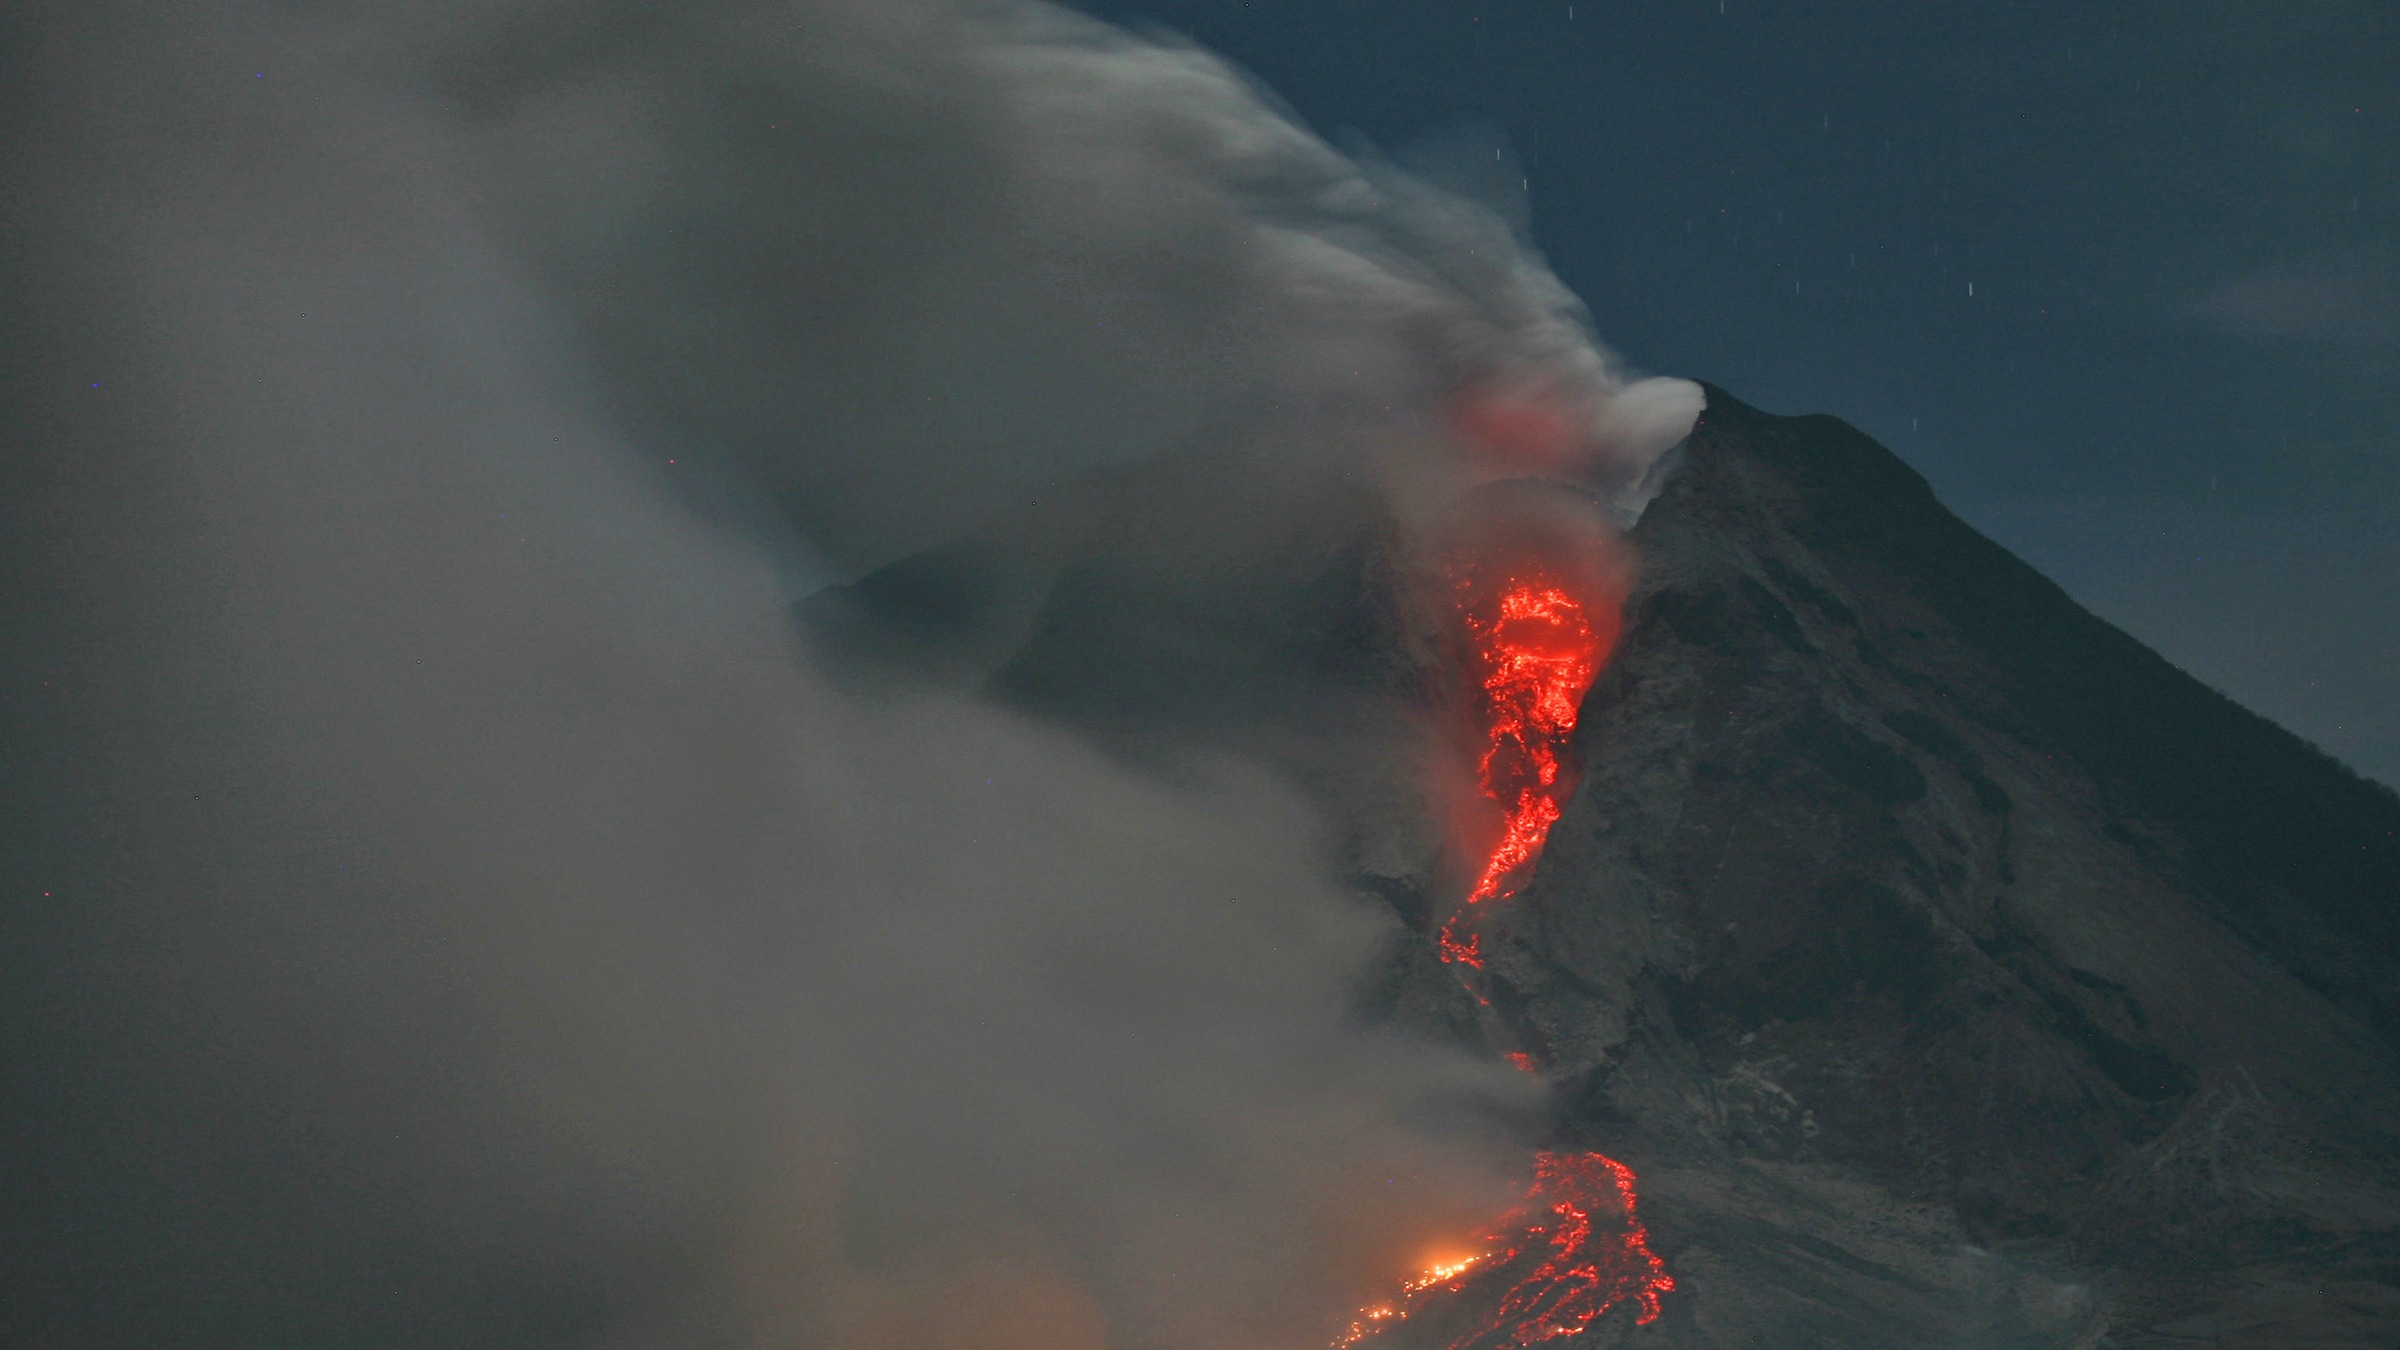 Mount Sinabung erupts with molten rocks and hot gasses as seen from  Jeraya, North Sumatra, Indonesia, early Tuesday, Jan. 14, 2014. The volcano has sporadically erupted since September, forcing thousands of people who live around it slopes to flee their homes. (AP Photo/Binsar Bakkara)